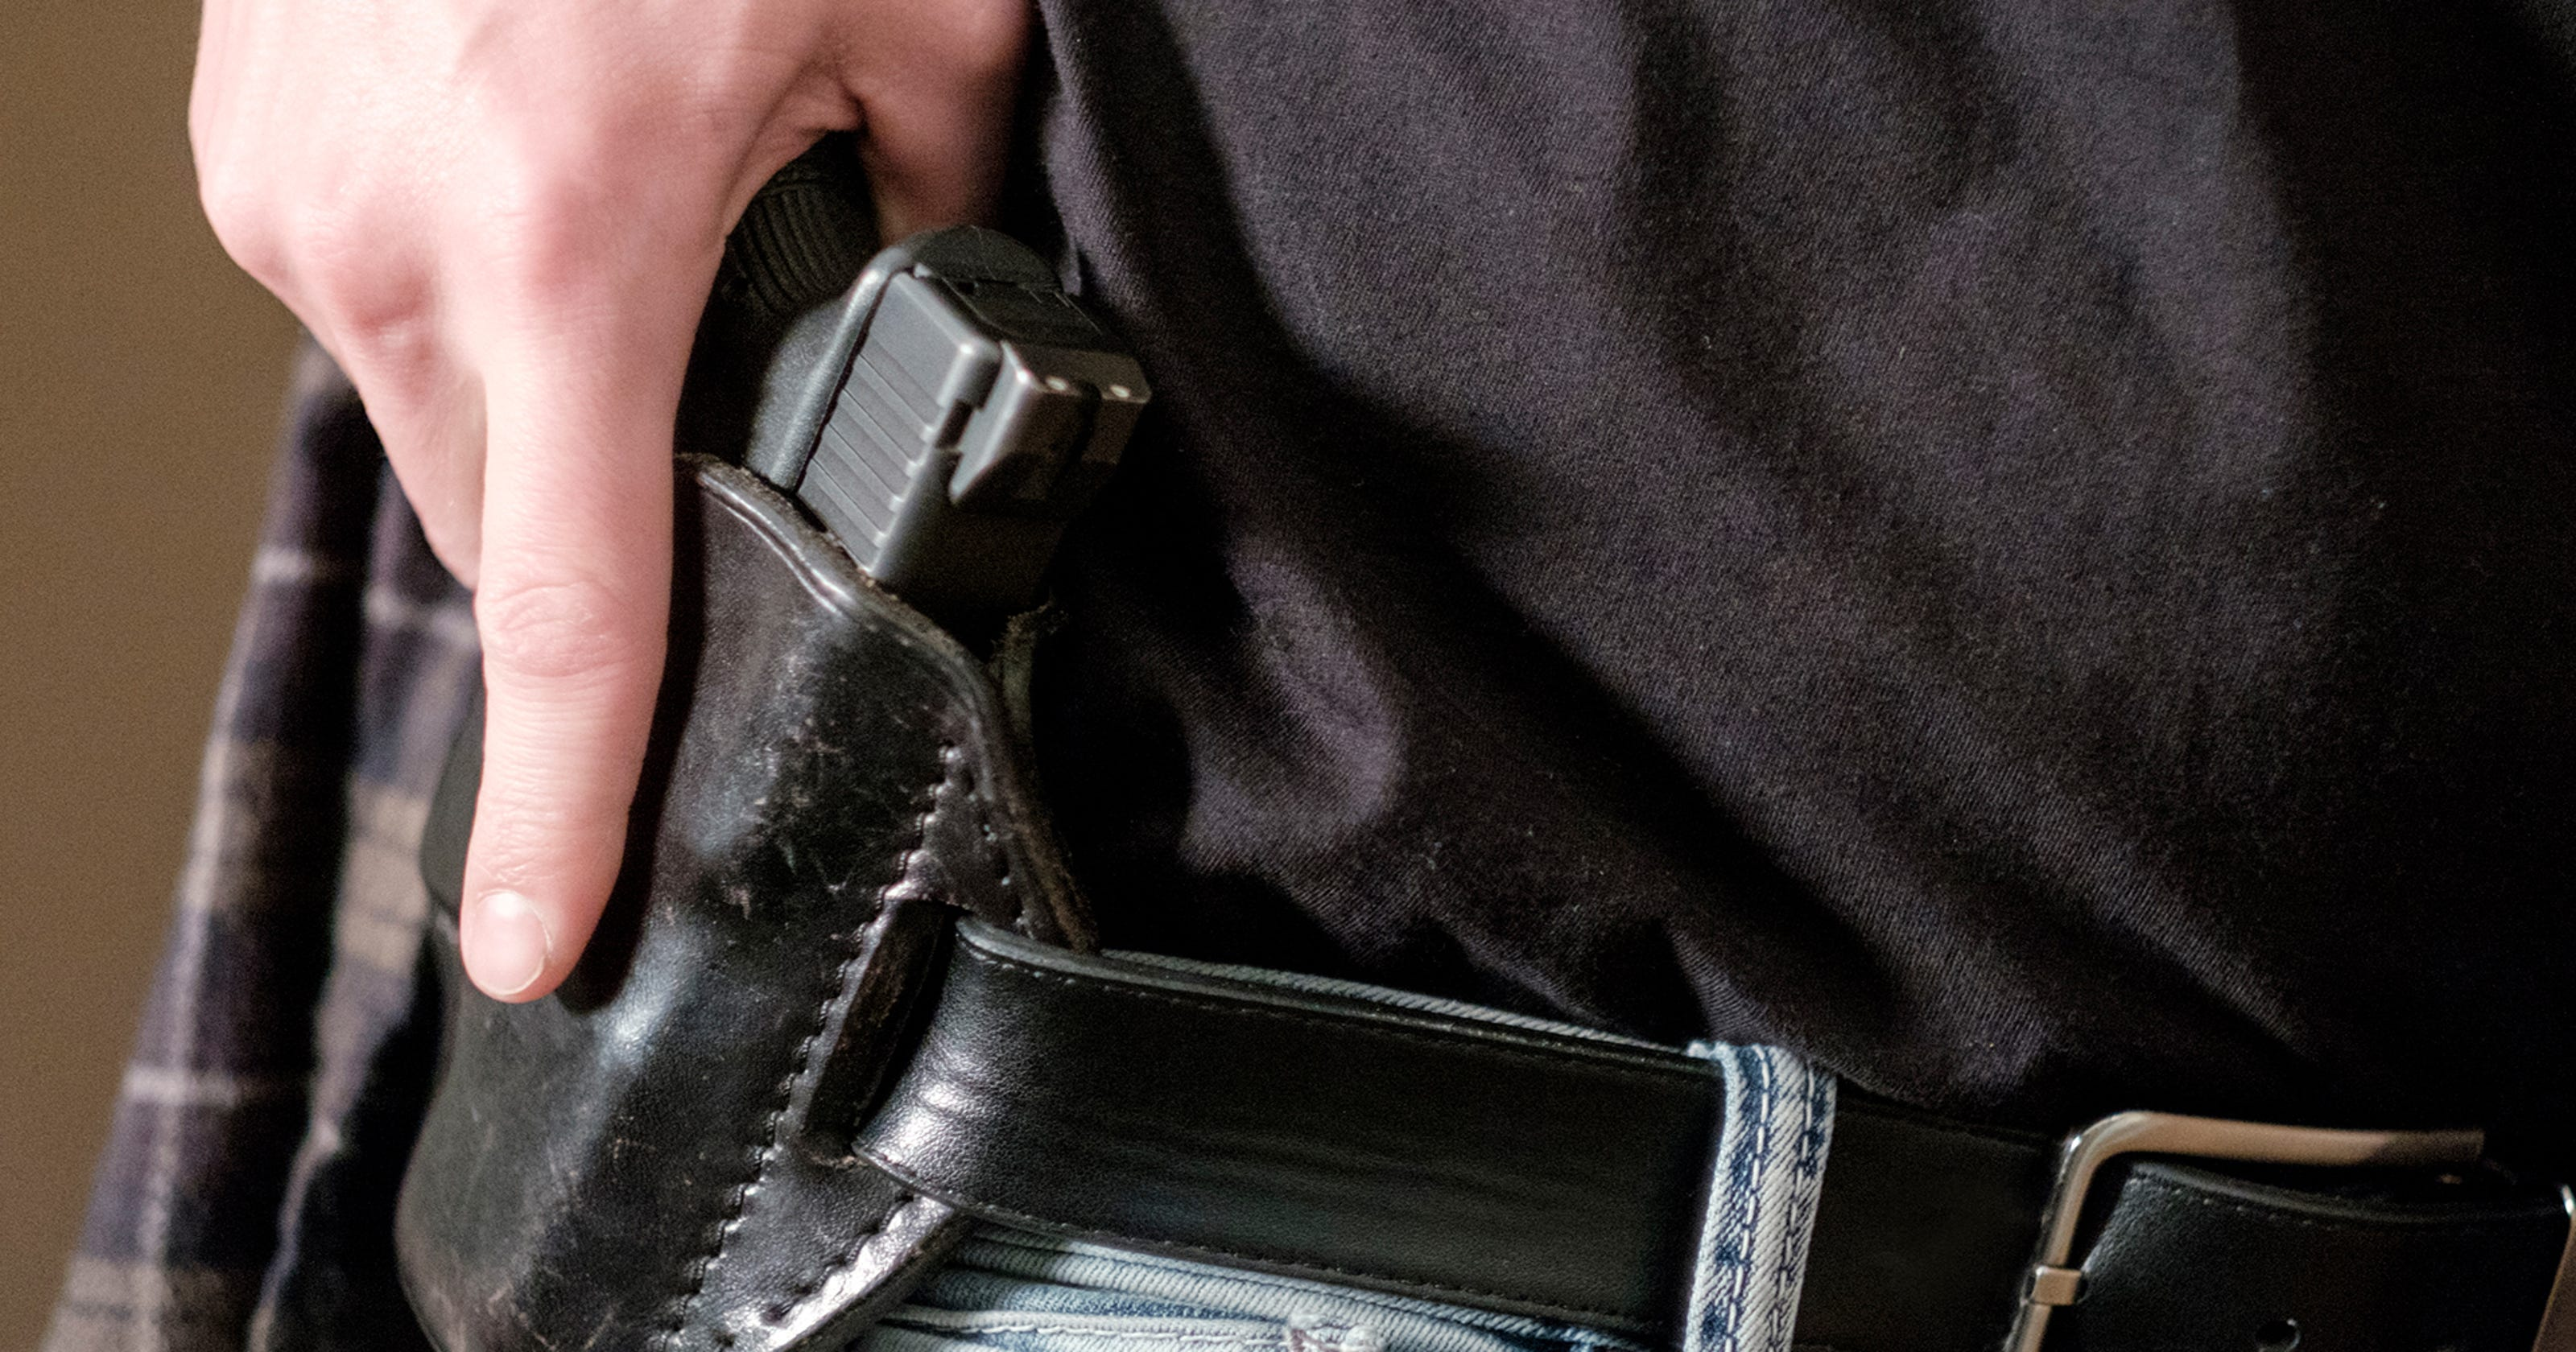 32 States Honor Pa Concealed Carry But Few Of Our Neighbors Do